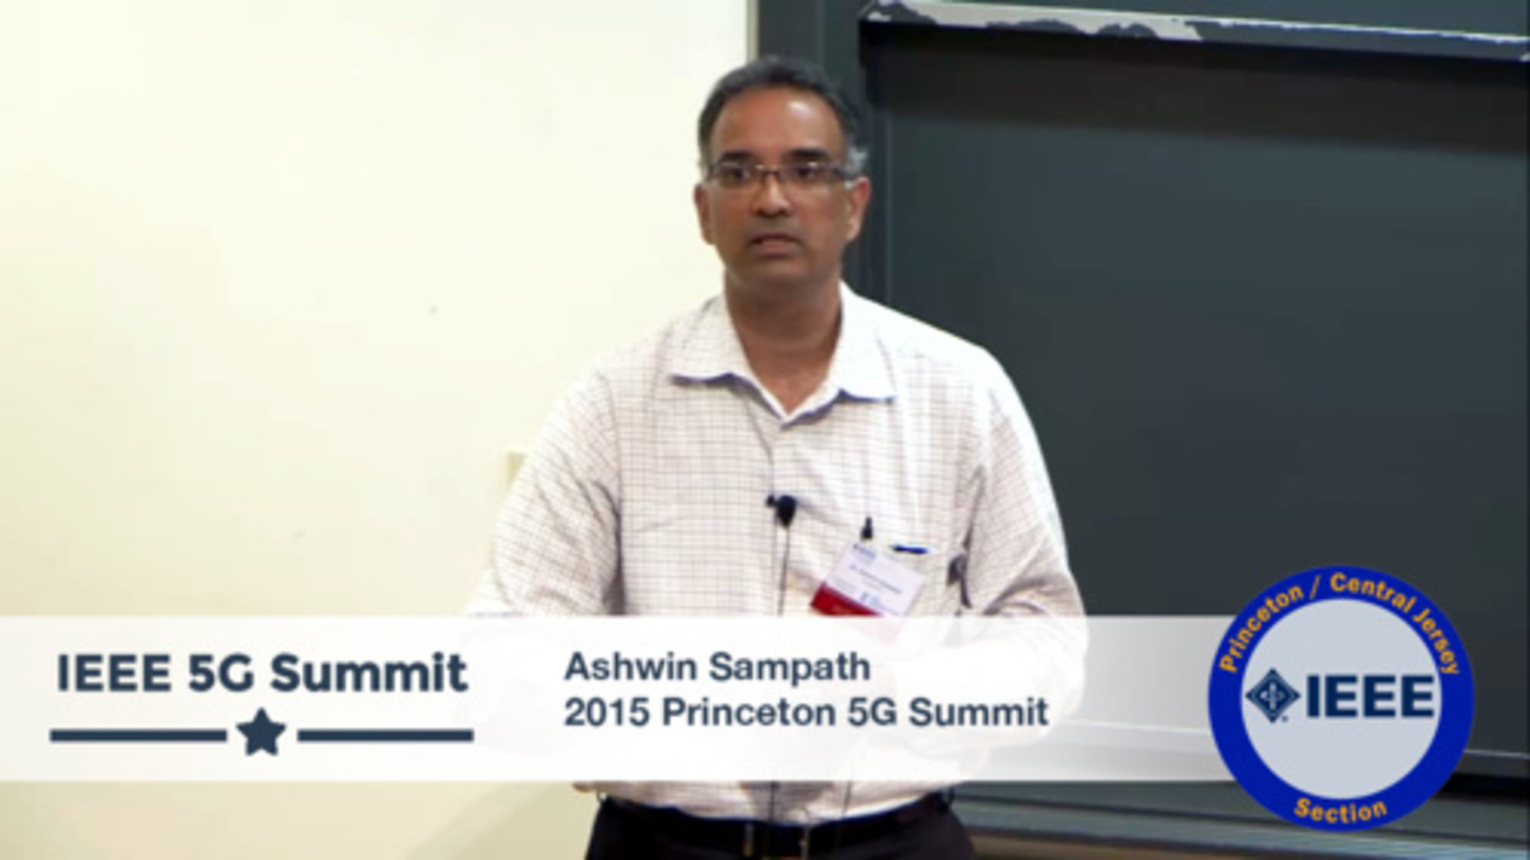 Princeton 5G Summit - Ashwin Sampath Keynote - Millimeter Waves - Washing Away the Competition